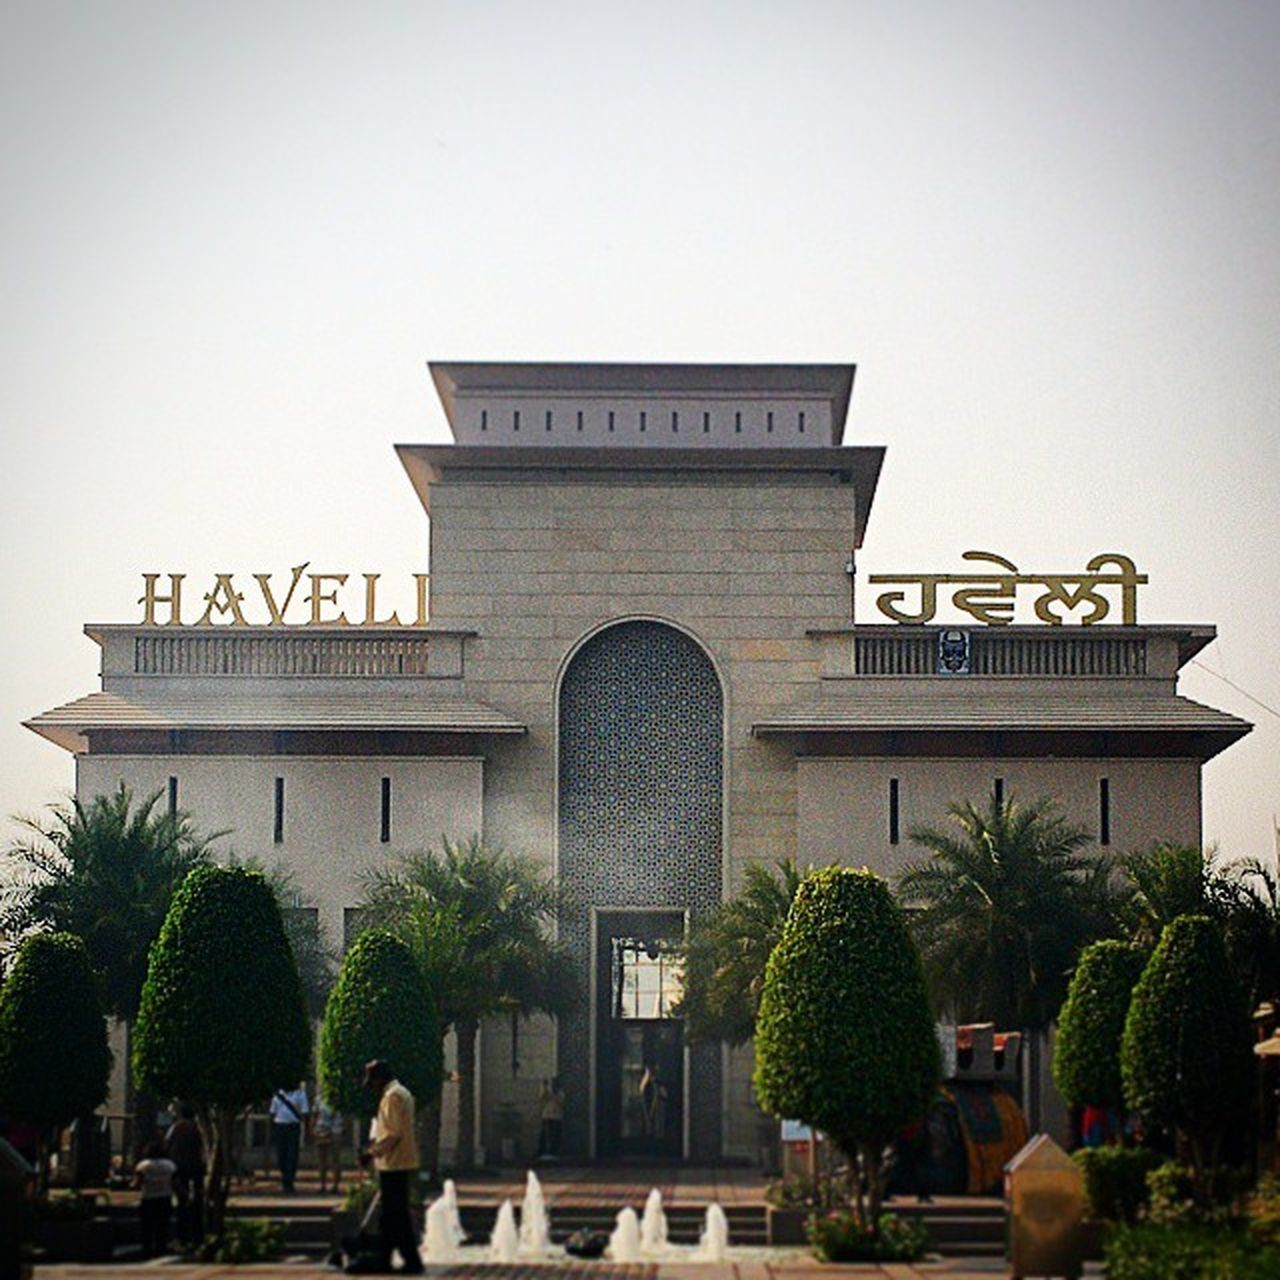 Haveli Awesomefood Delhi Chandigarh Highway Palace Royalpunjab